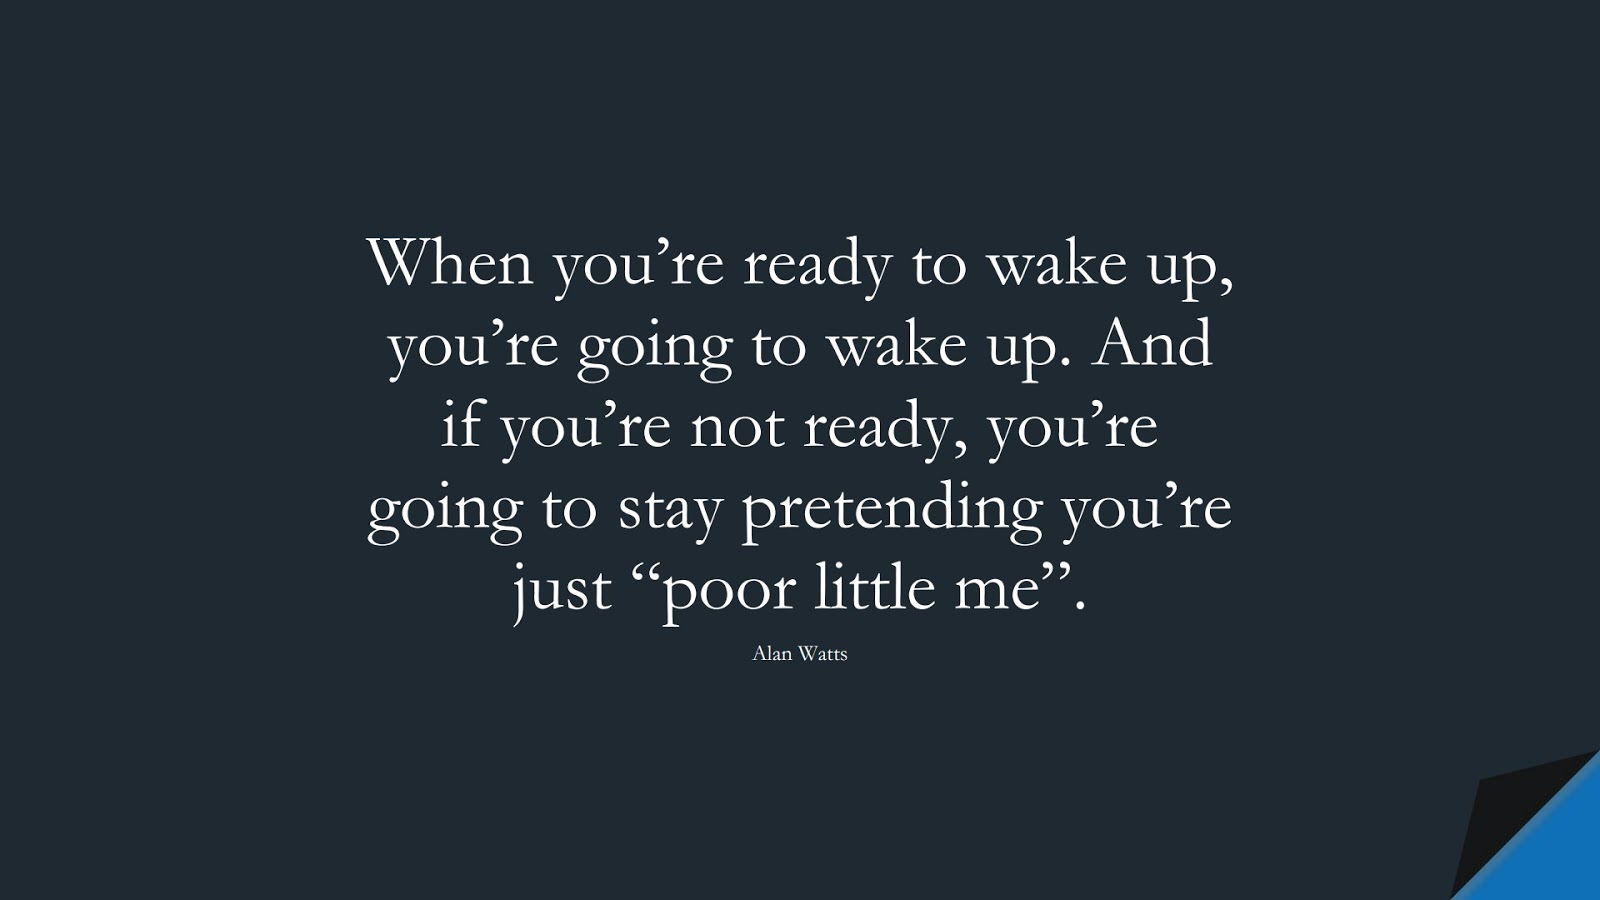 """When you're ready to wake up, you're going to wake up. And if you're not ready, you're going to stay pretending you're just """"poor little me"""". (Alan Watts);  #DepressionQuotes"""